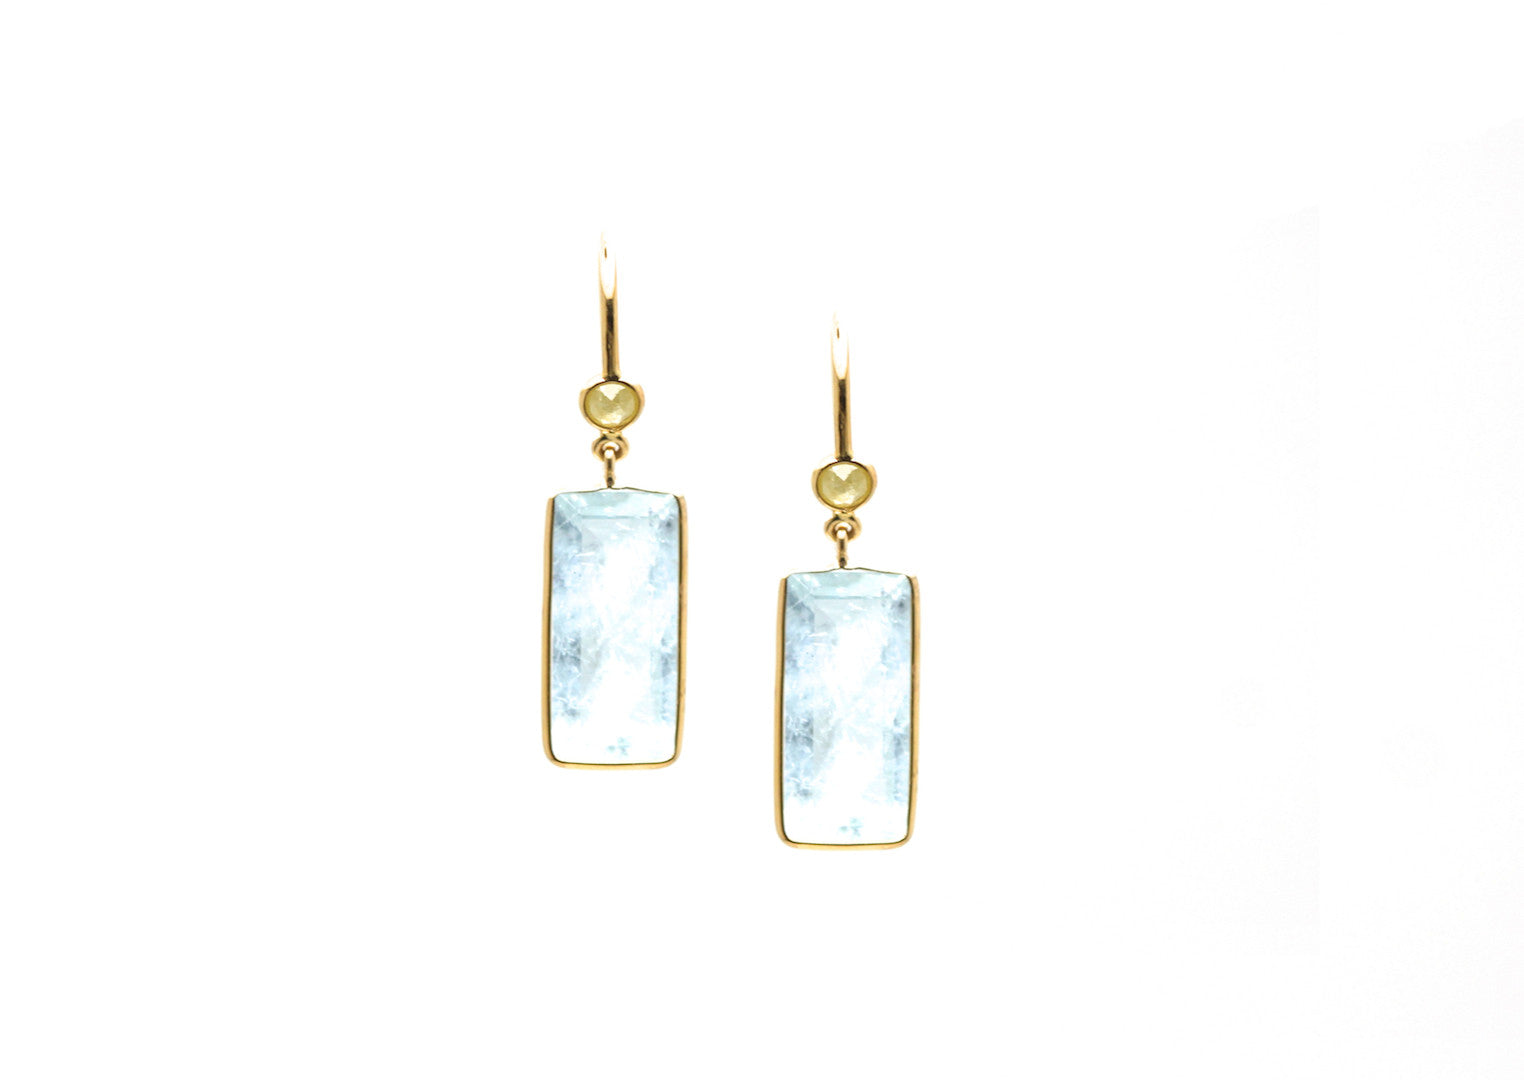 18K Yellow Gold Earring With Aquamarine and Champagne Diamond